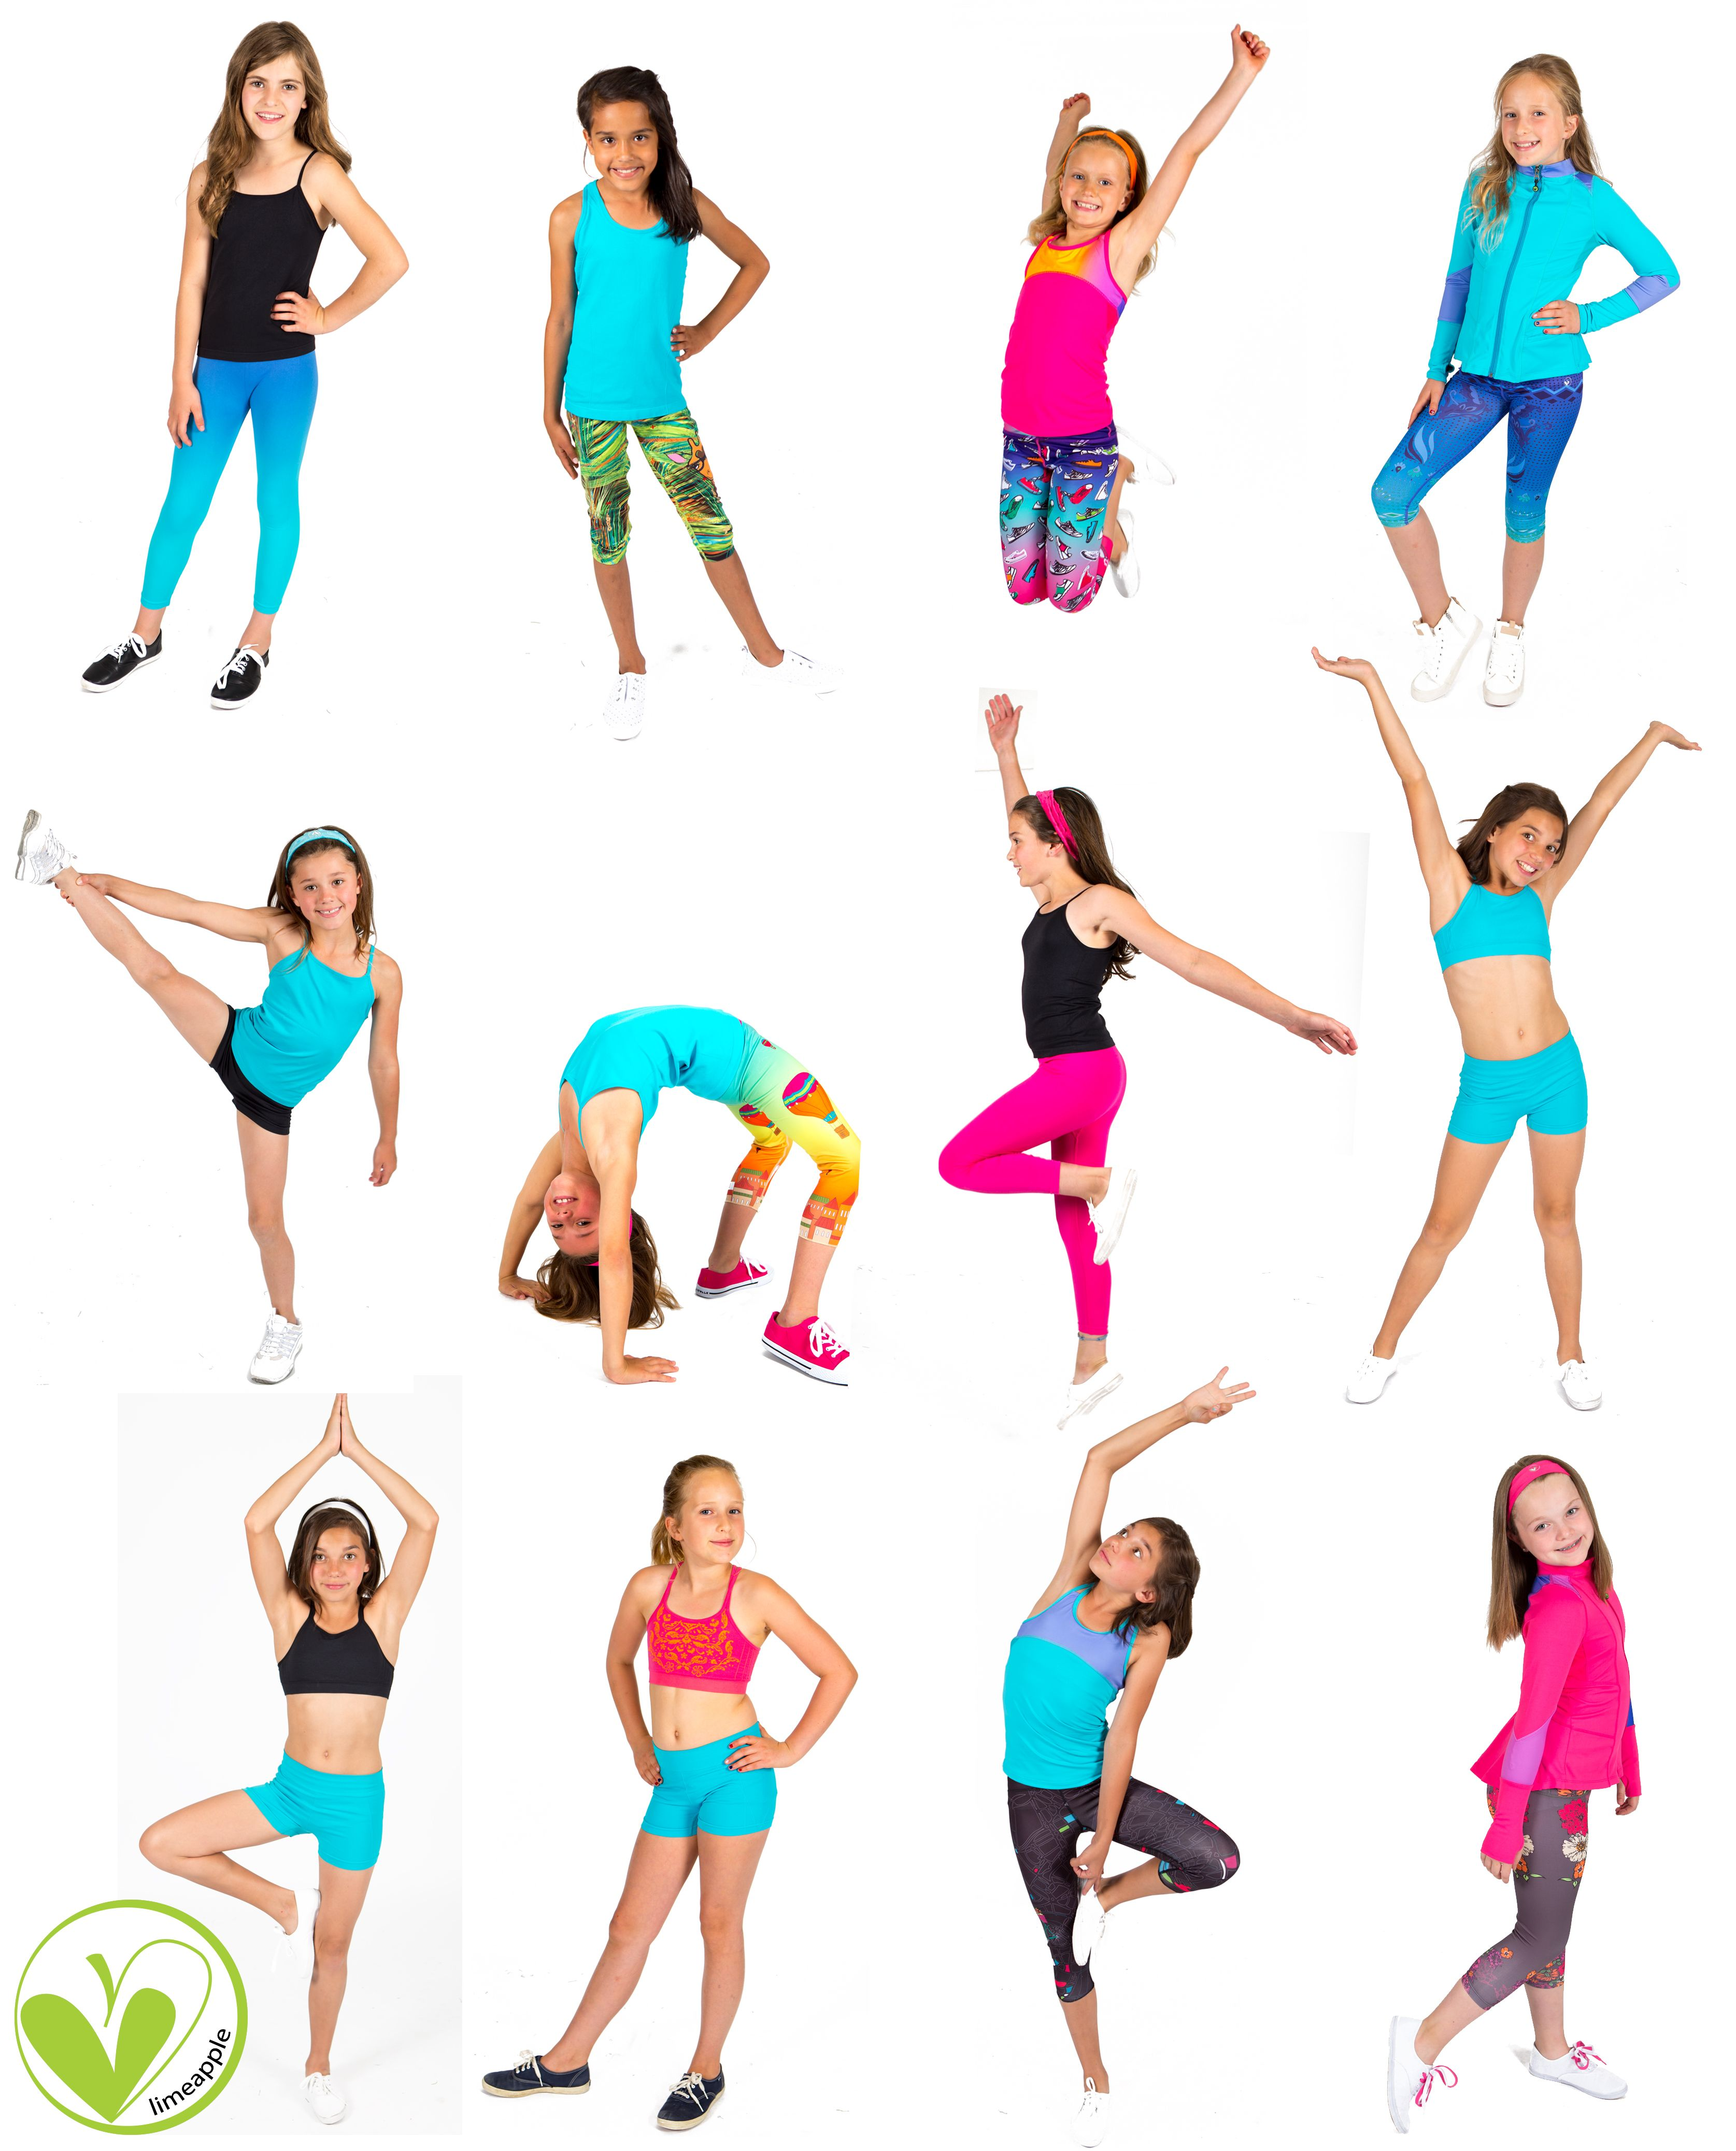 Comfortable and stylish girls activewear from Limeapple's new 2017 spring line!